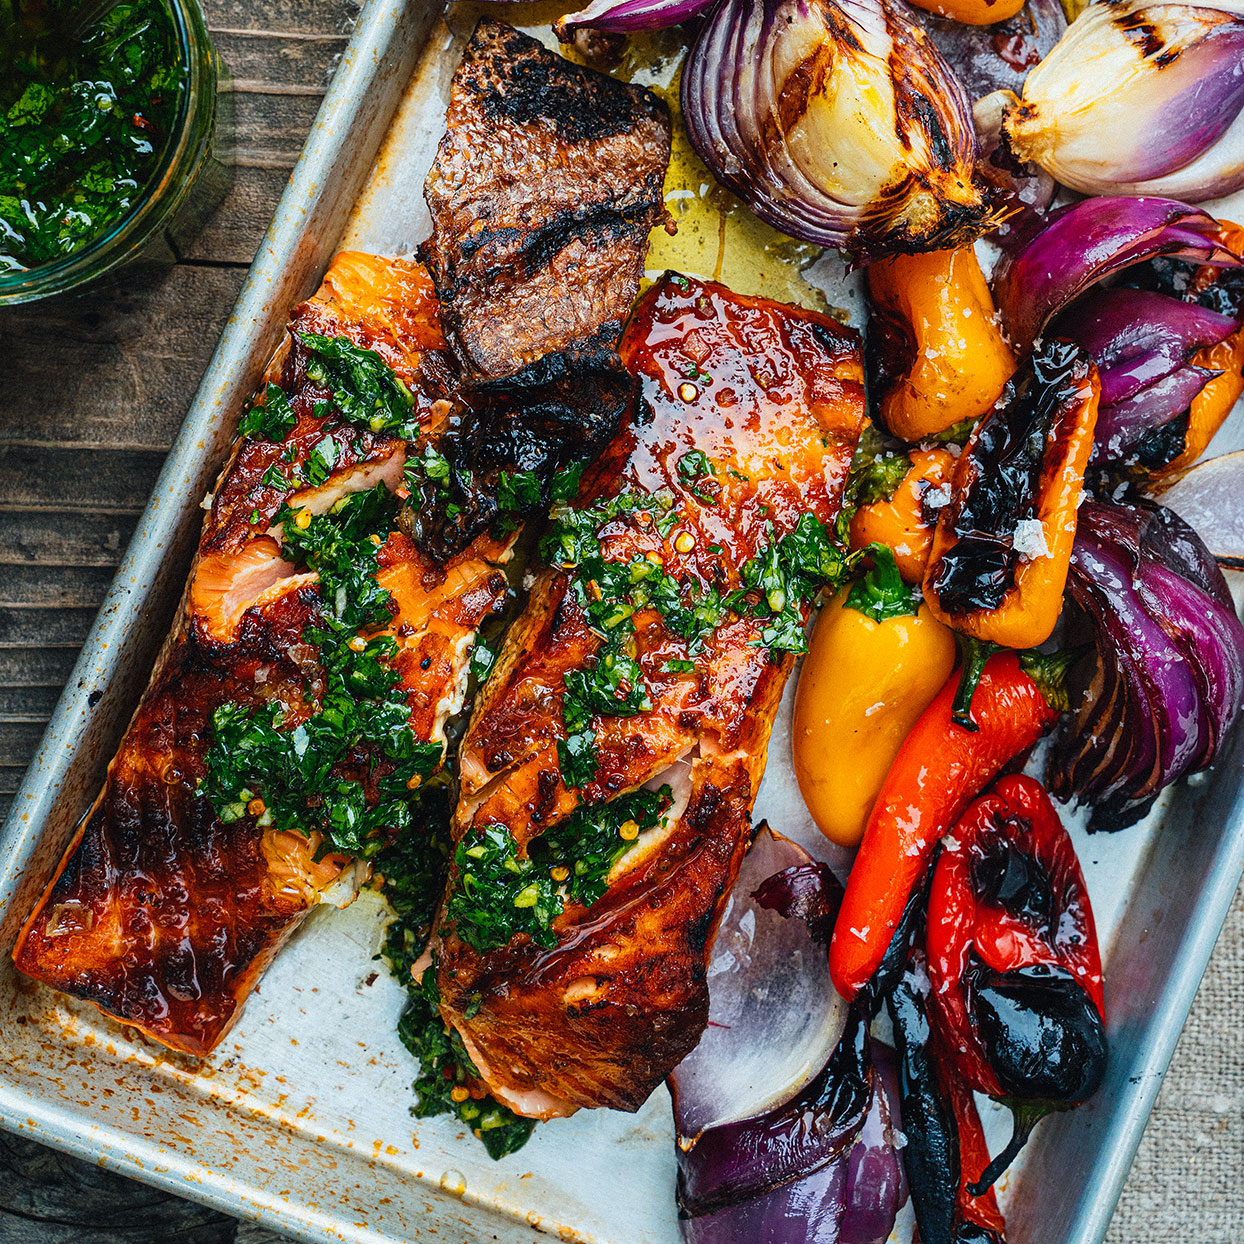 It may seem counterintuitive to start the fish skin-side up. But when you flip it, the fish skin captures the juices as it finishes cooking for extra-flavorful results. Serve with chimichurri sauce (see Associated Recipe). Source: EatingWell Magazine, June 2020